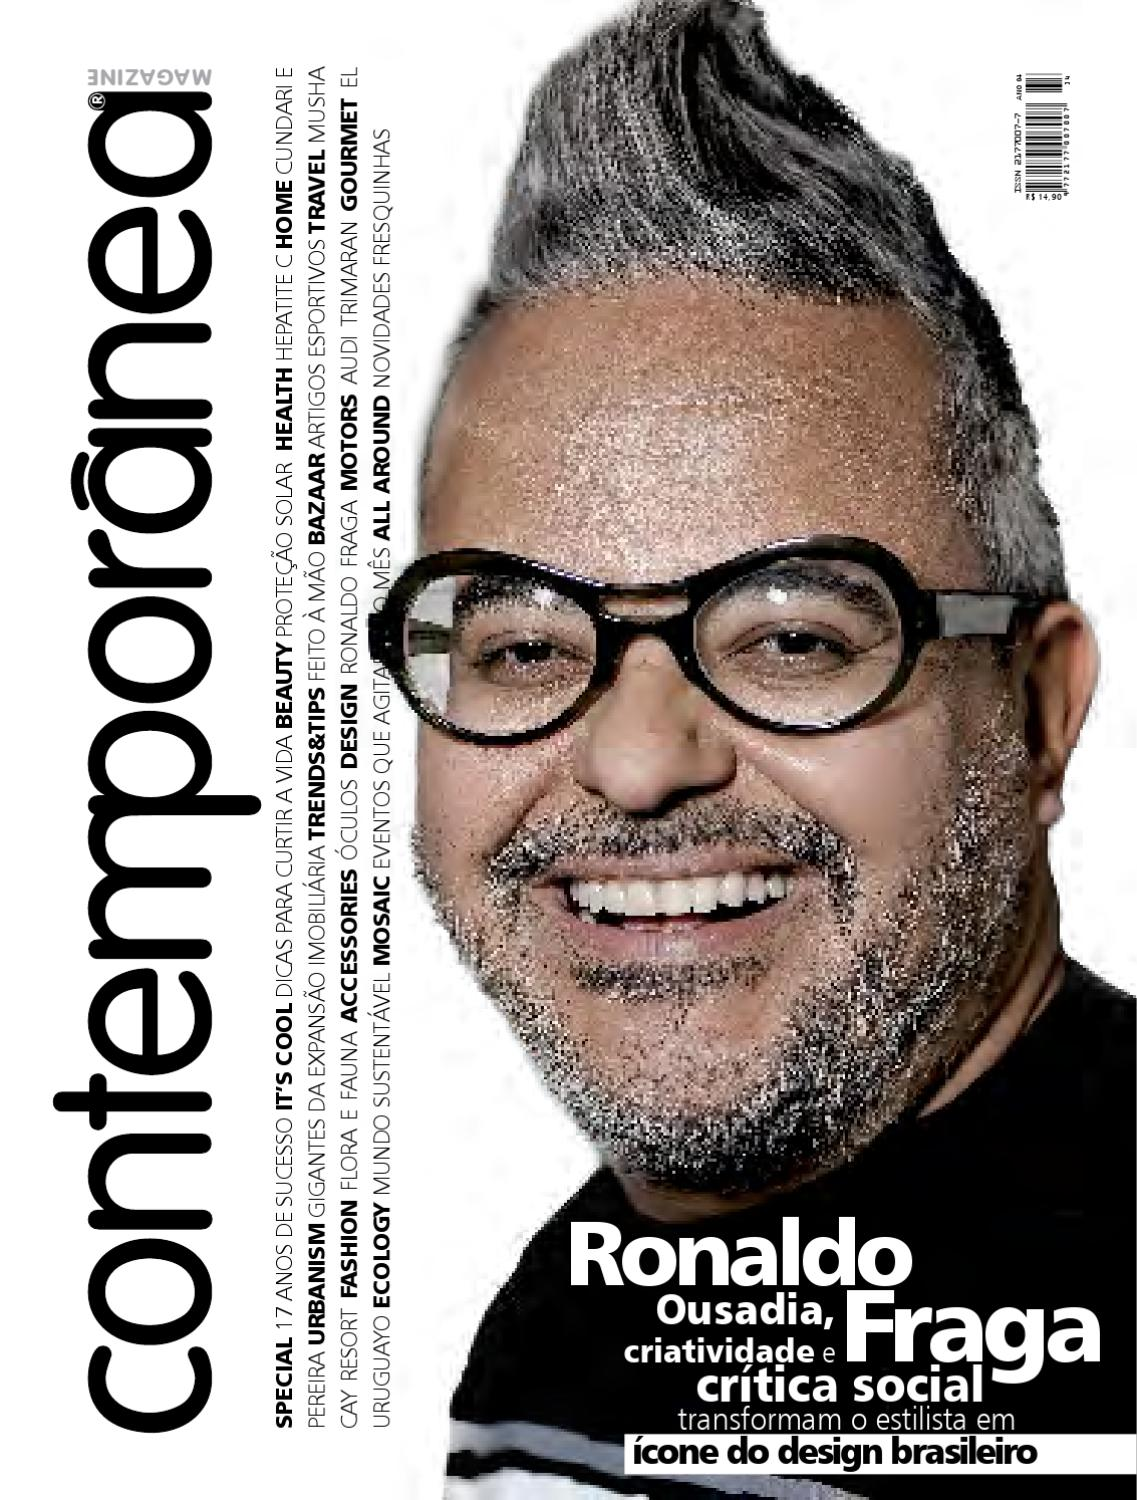 9041c4b59a700 Revista Contemporânea - Ronaldo Fraga by Contemporânea Magazine - issuu